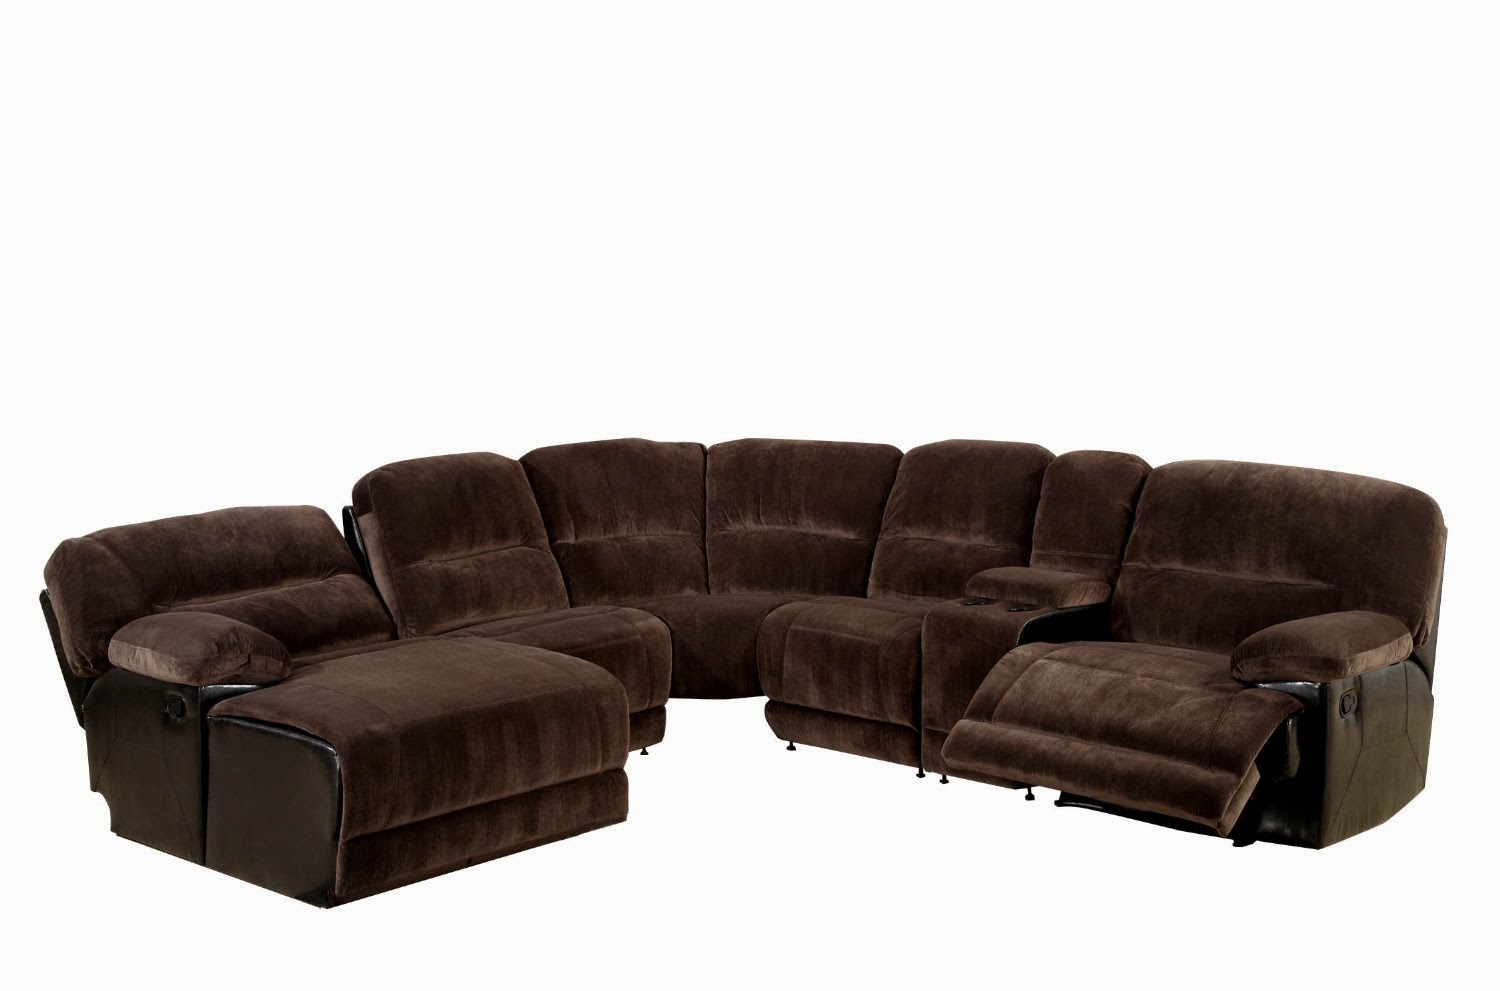 Reclining sofas reclining sectional sofa for Couch und sofa